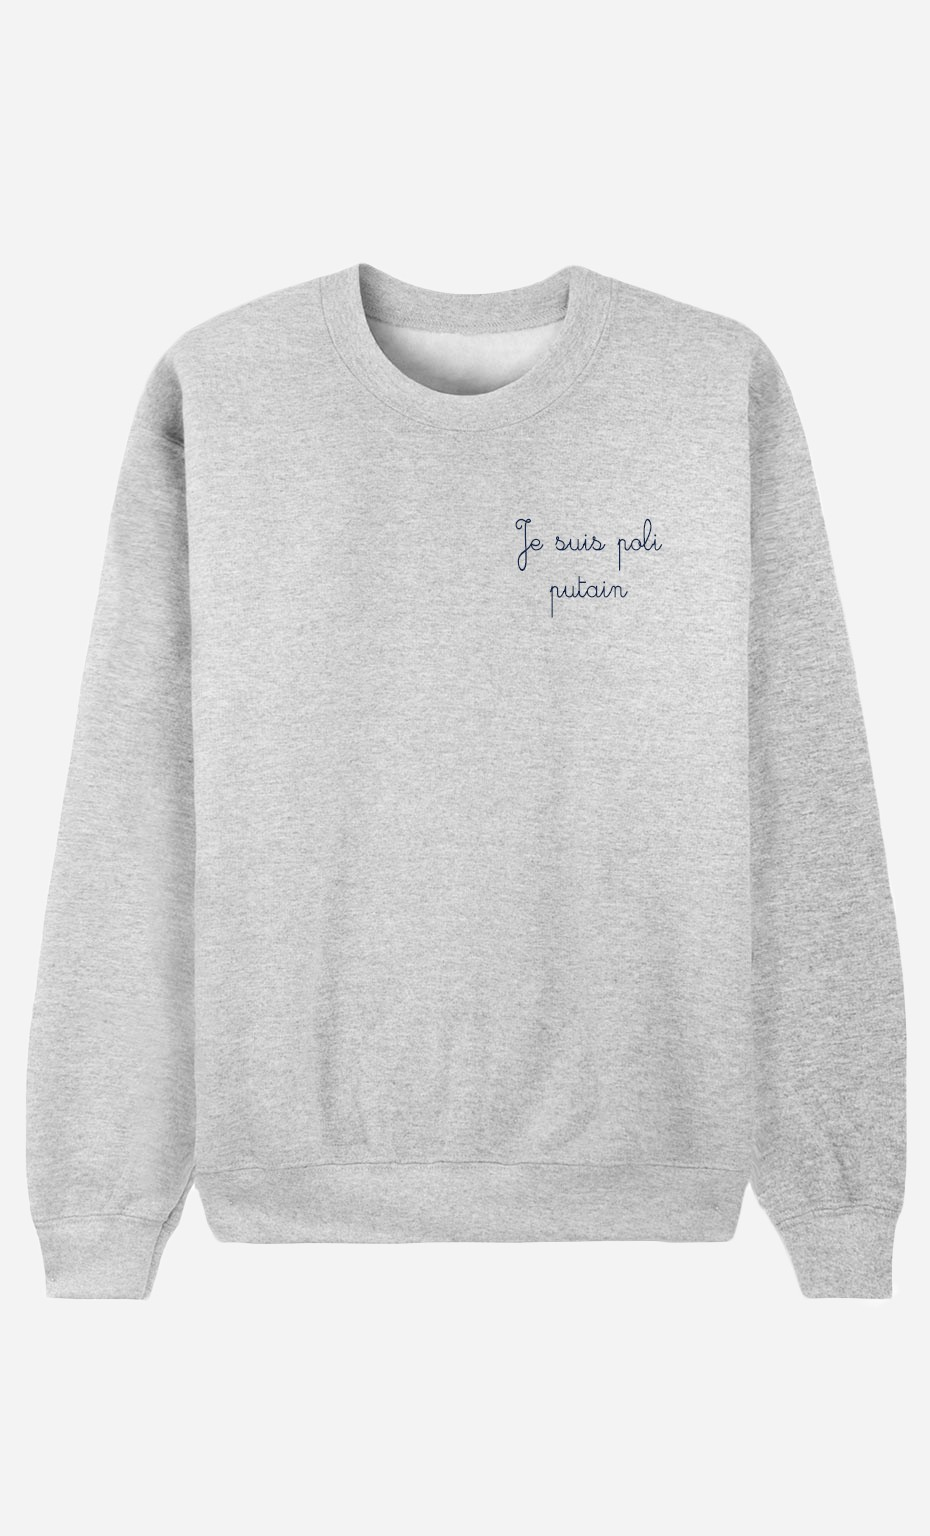 Sweat Homme Je Suis Poli Putain - Brodé